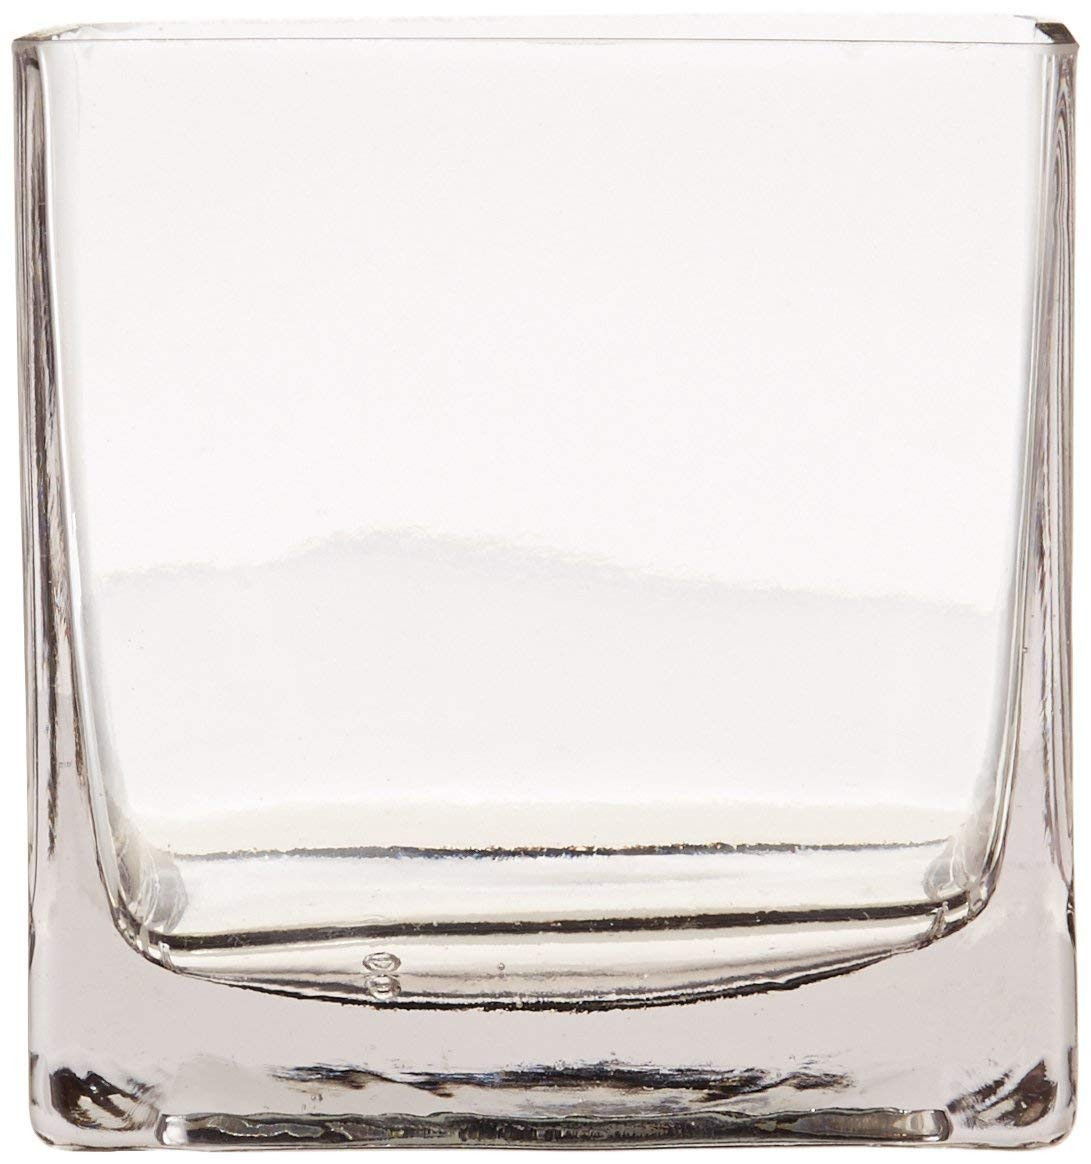 Large Square Clear Glass Vases Of Amazon Com 12piece 4 Square Crystal Clear Glass Vase Home Kitchen Pertaining to 61odrrfbtgl Sl1164